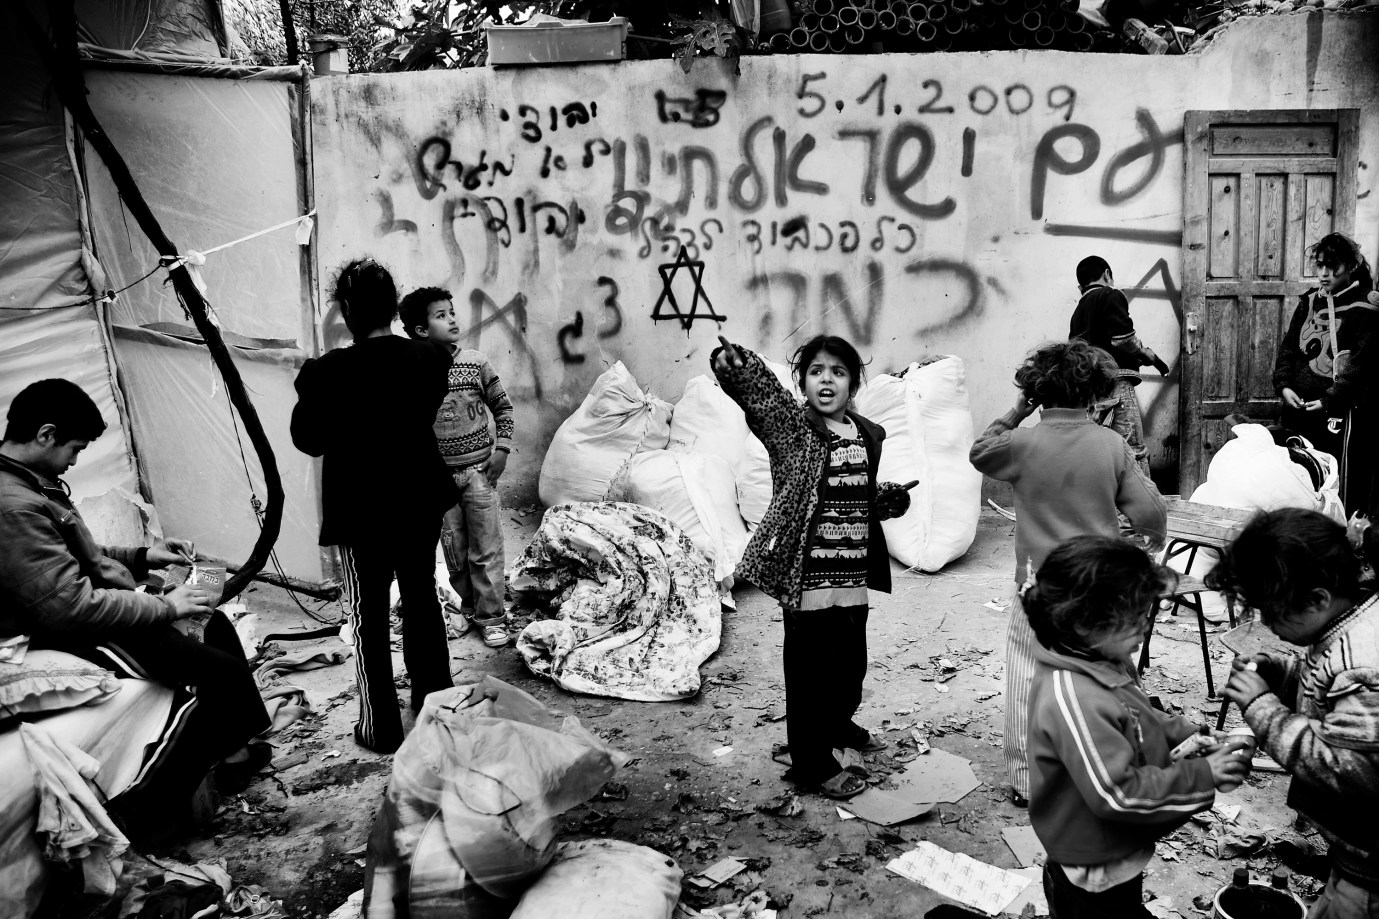 A house in Beit Lahiya is completely destroyed by Israeli soldiers. Refrigerators, computers and water tanks are shot to pieces, money and jewelry is stolen and the walls are painted with Hebrew graffiti and large Stars of David. The children immediately started to look for their toys.